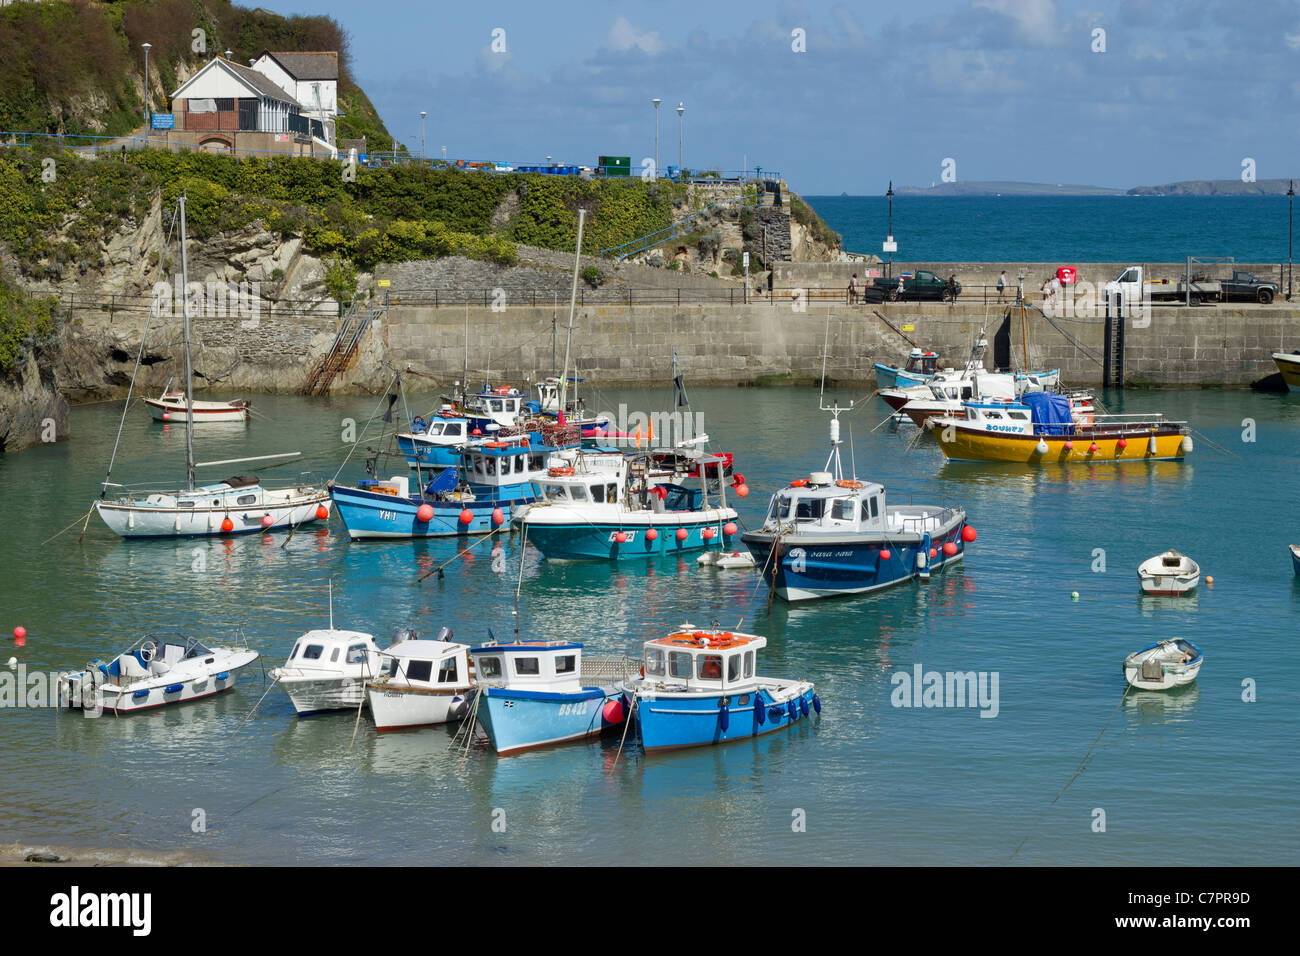 Colourful boats in Newquay harbour, Cornwall UK. - Stock Image